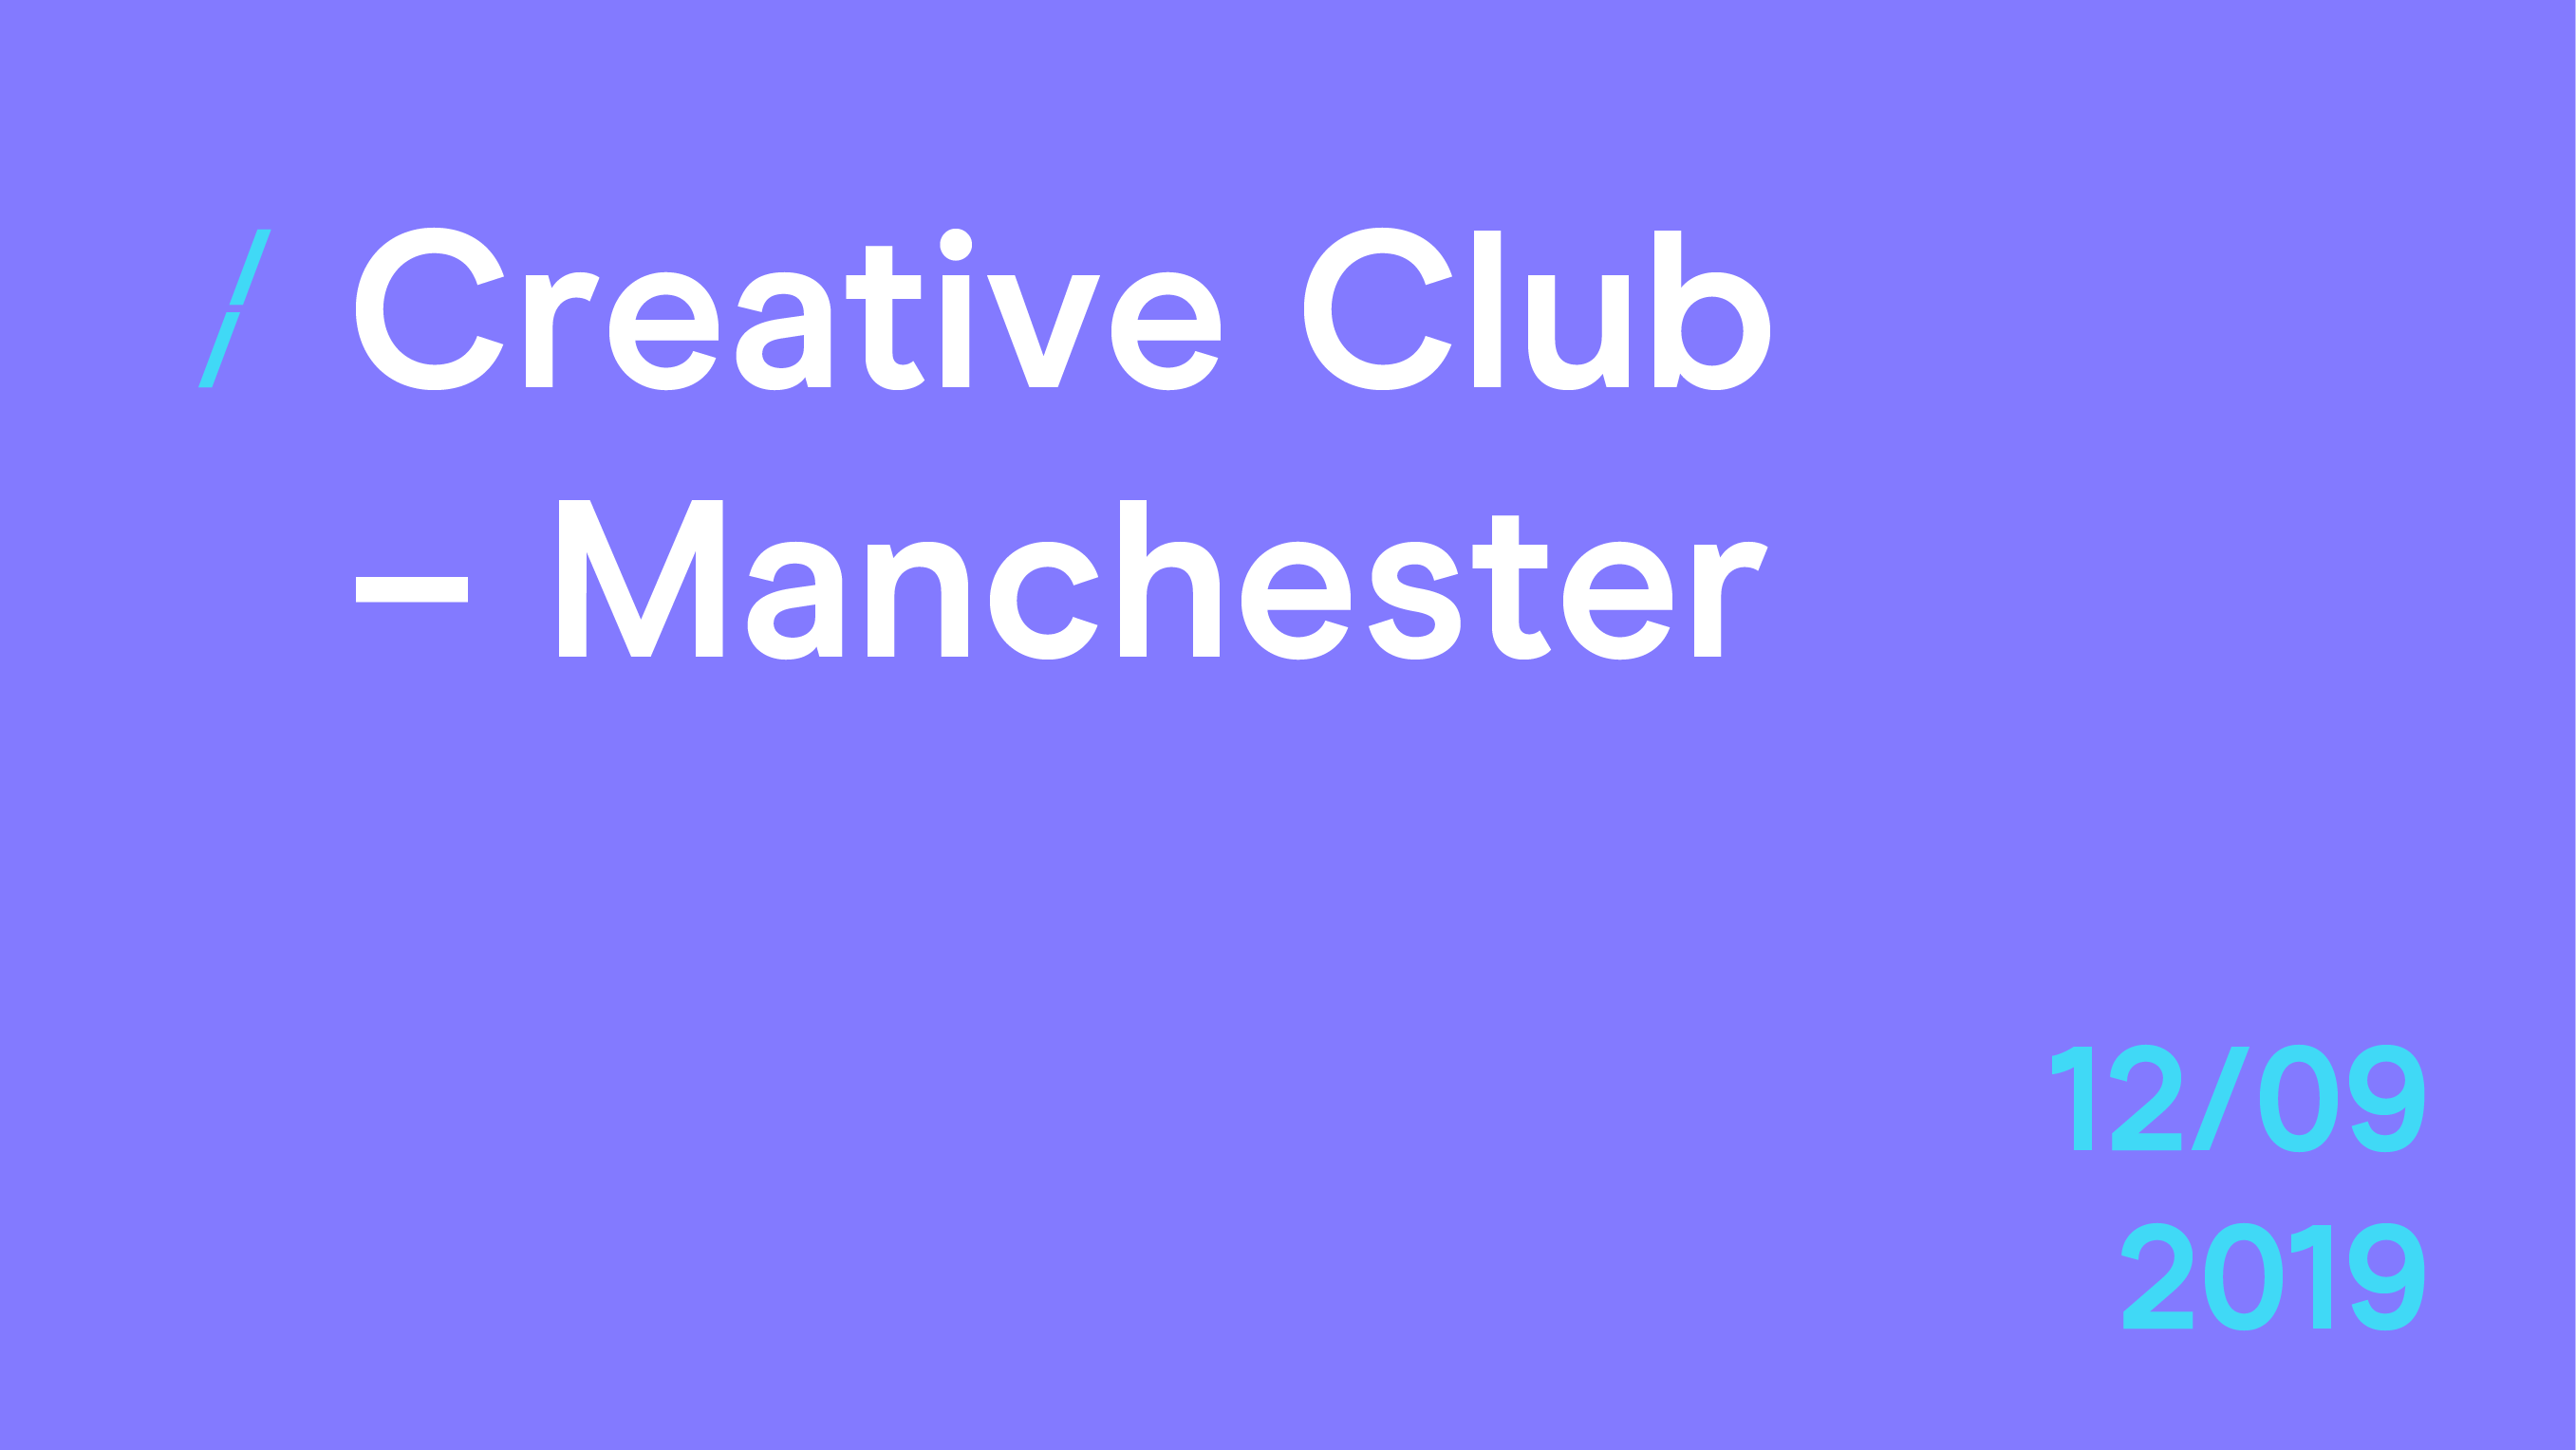 Creative Club Manchester Web Image 1.png